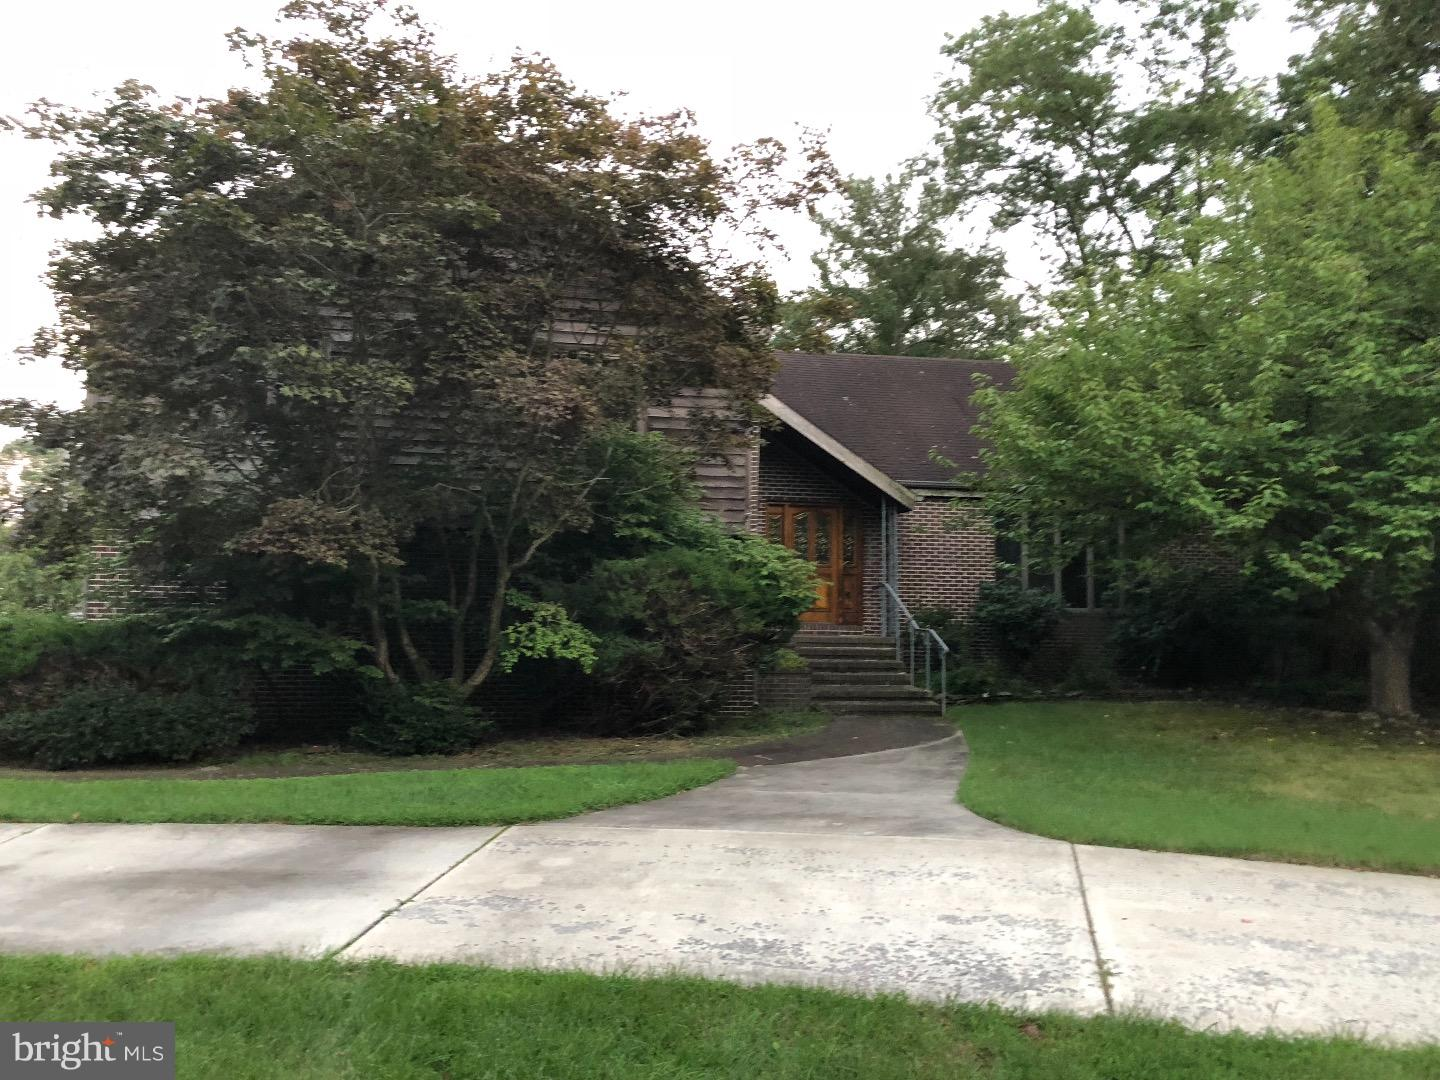 Single Family Home for Sale at 402 HIGHLAND BLVD Absecon, New Jersey 08201 United States